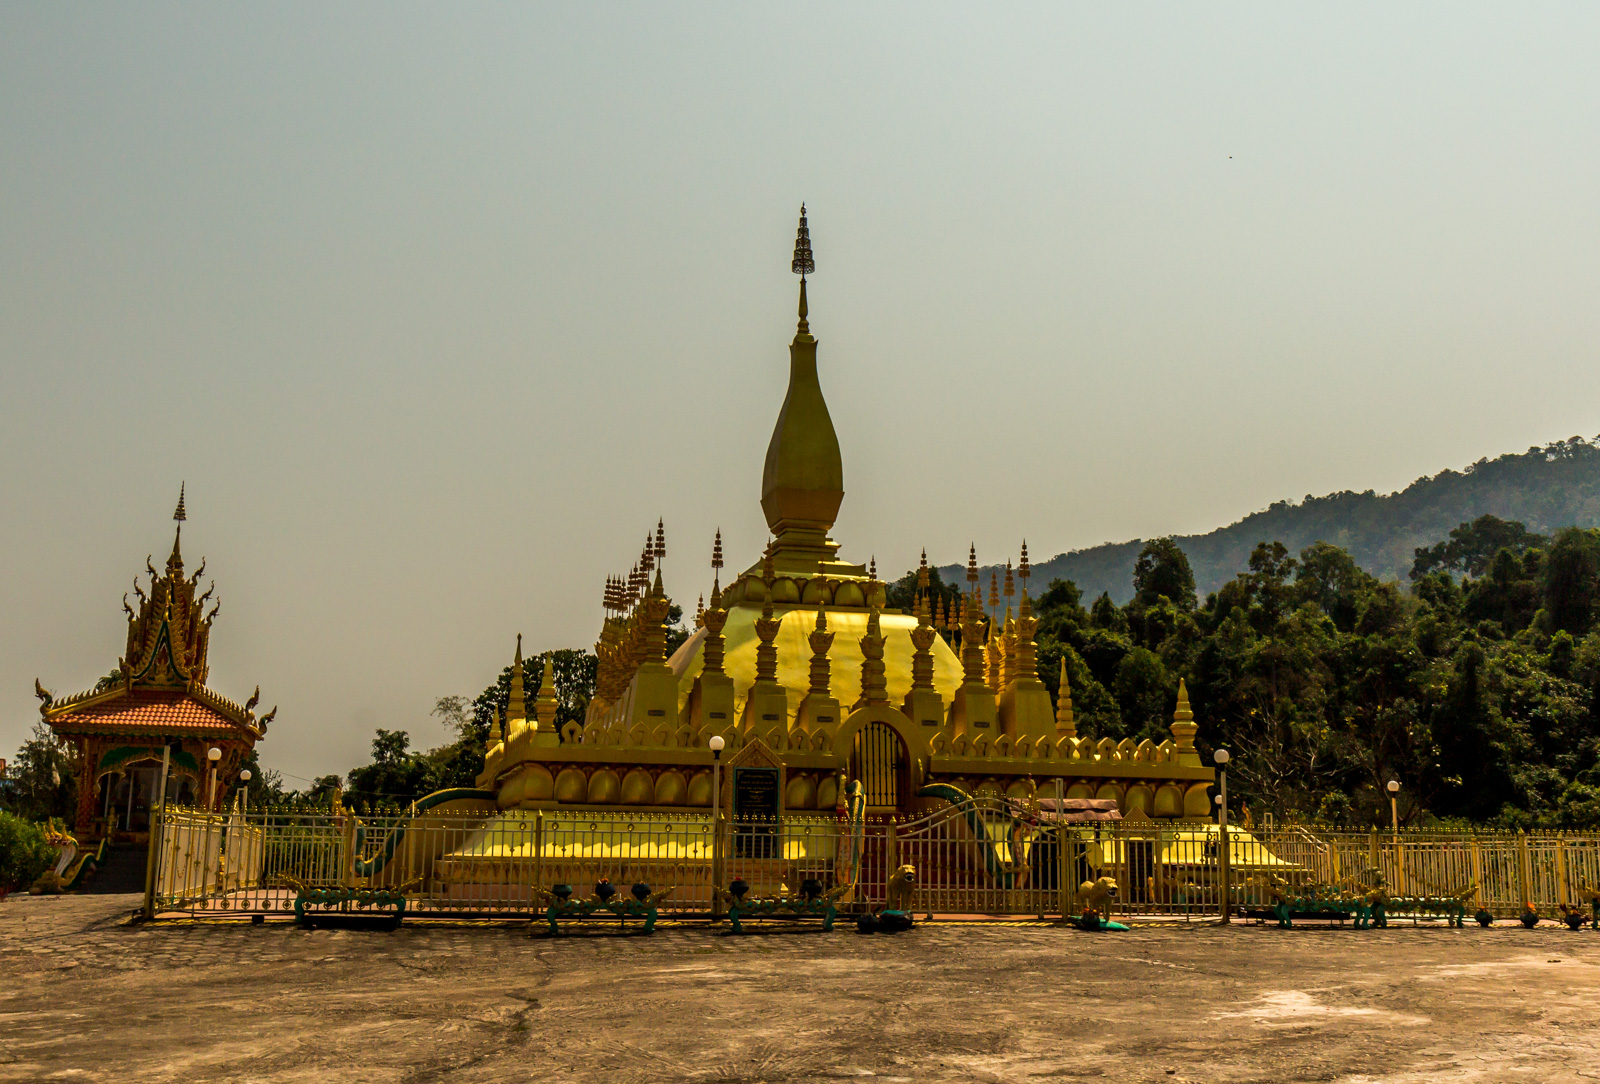 This temple looked like Pha That Luang.